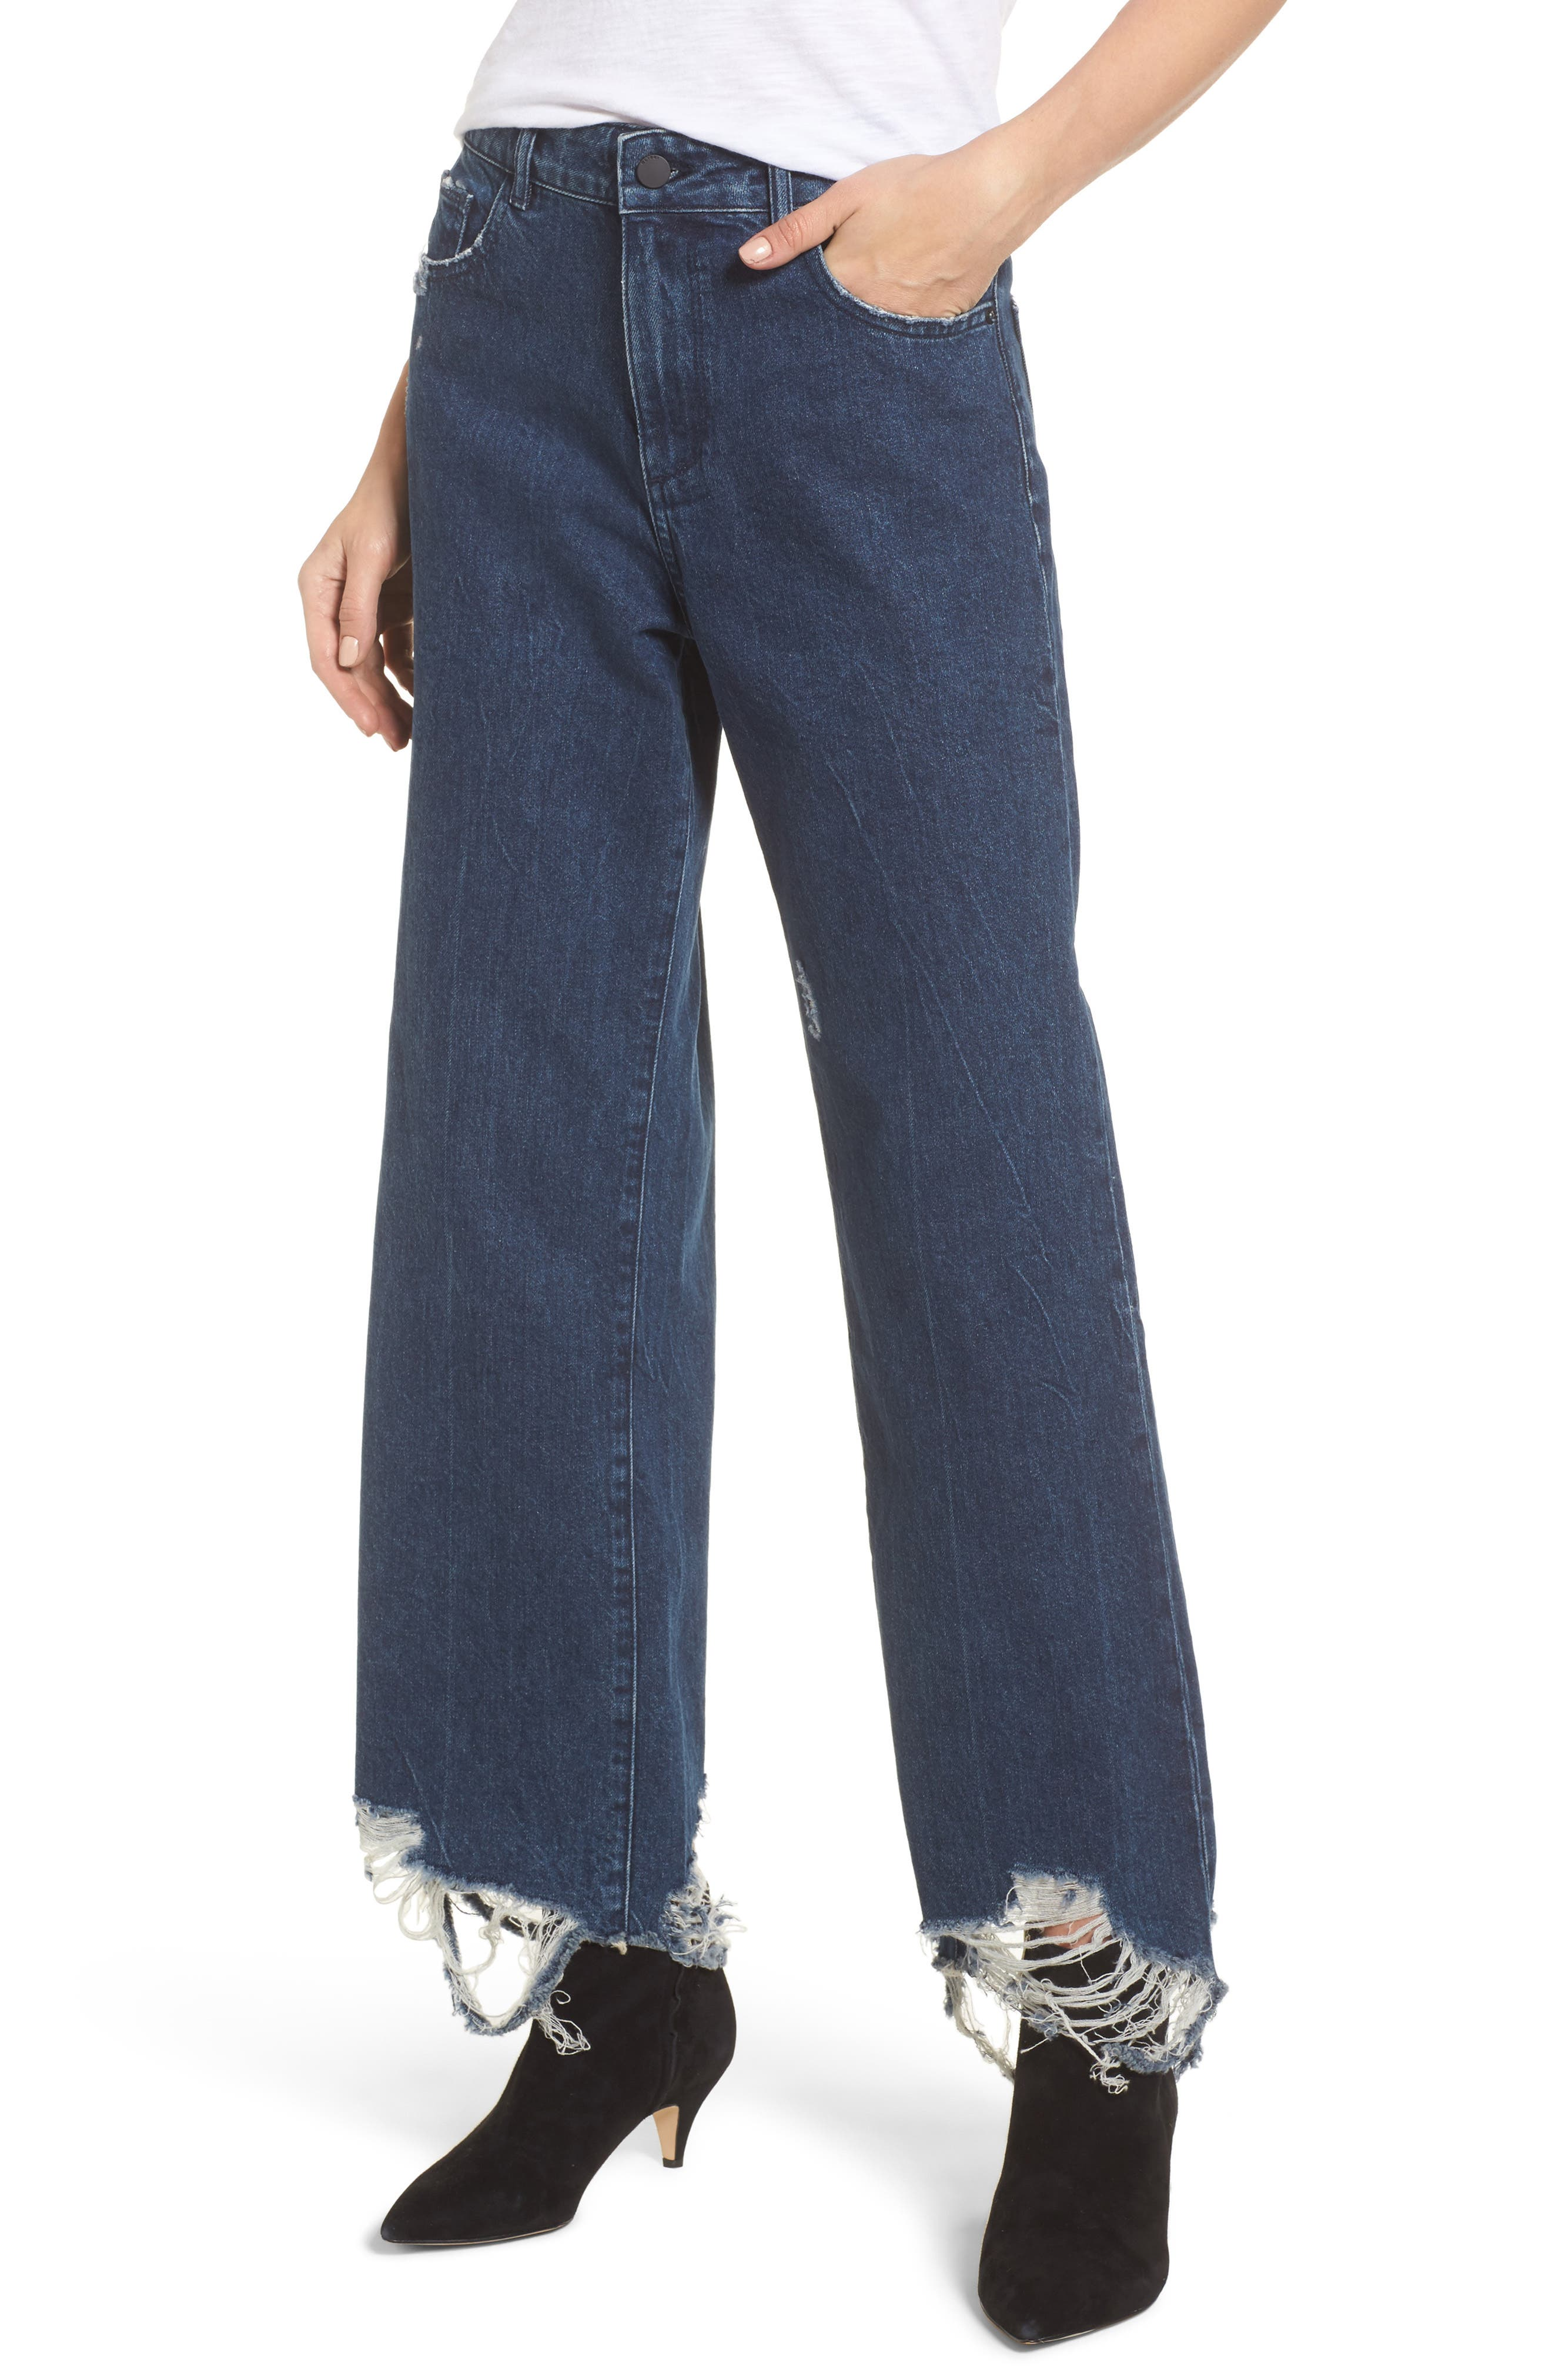 Hepburn High Waist Wide Leg Jeans,                         Main,                         color,